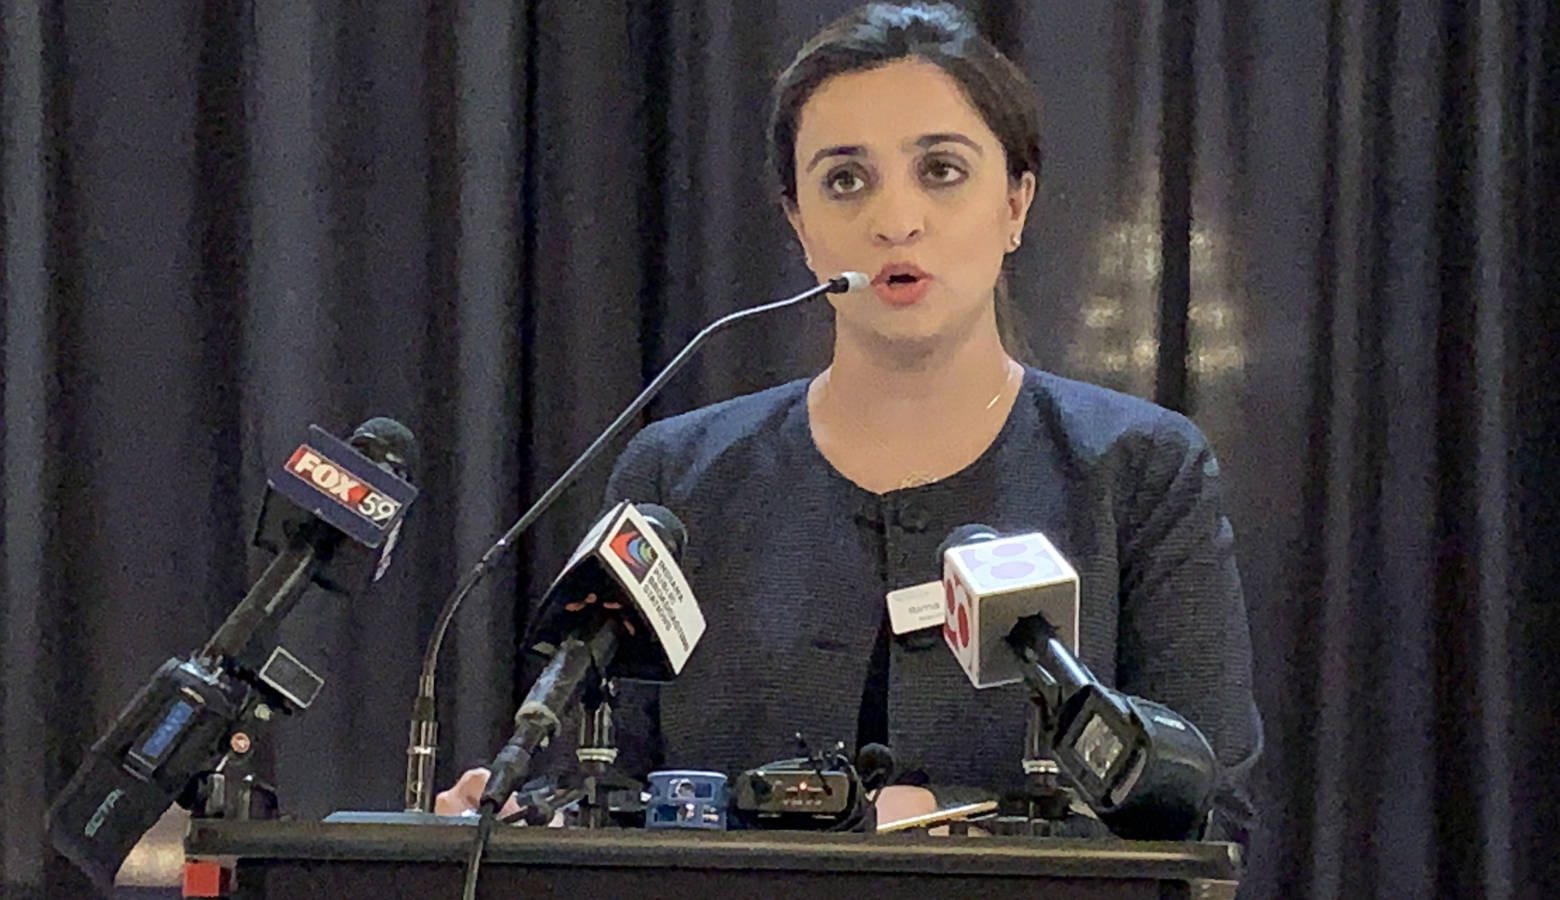 Women4Change Indiana executive director Rima Shahid says leaving sex and gender out of hate crimes legislation is particularly harmful. (Brandon Smith/IPB News)